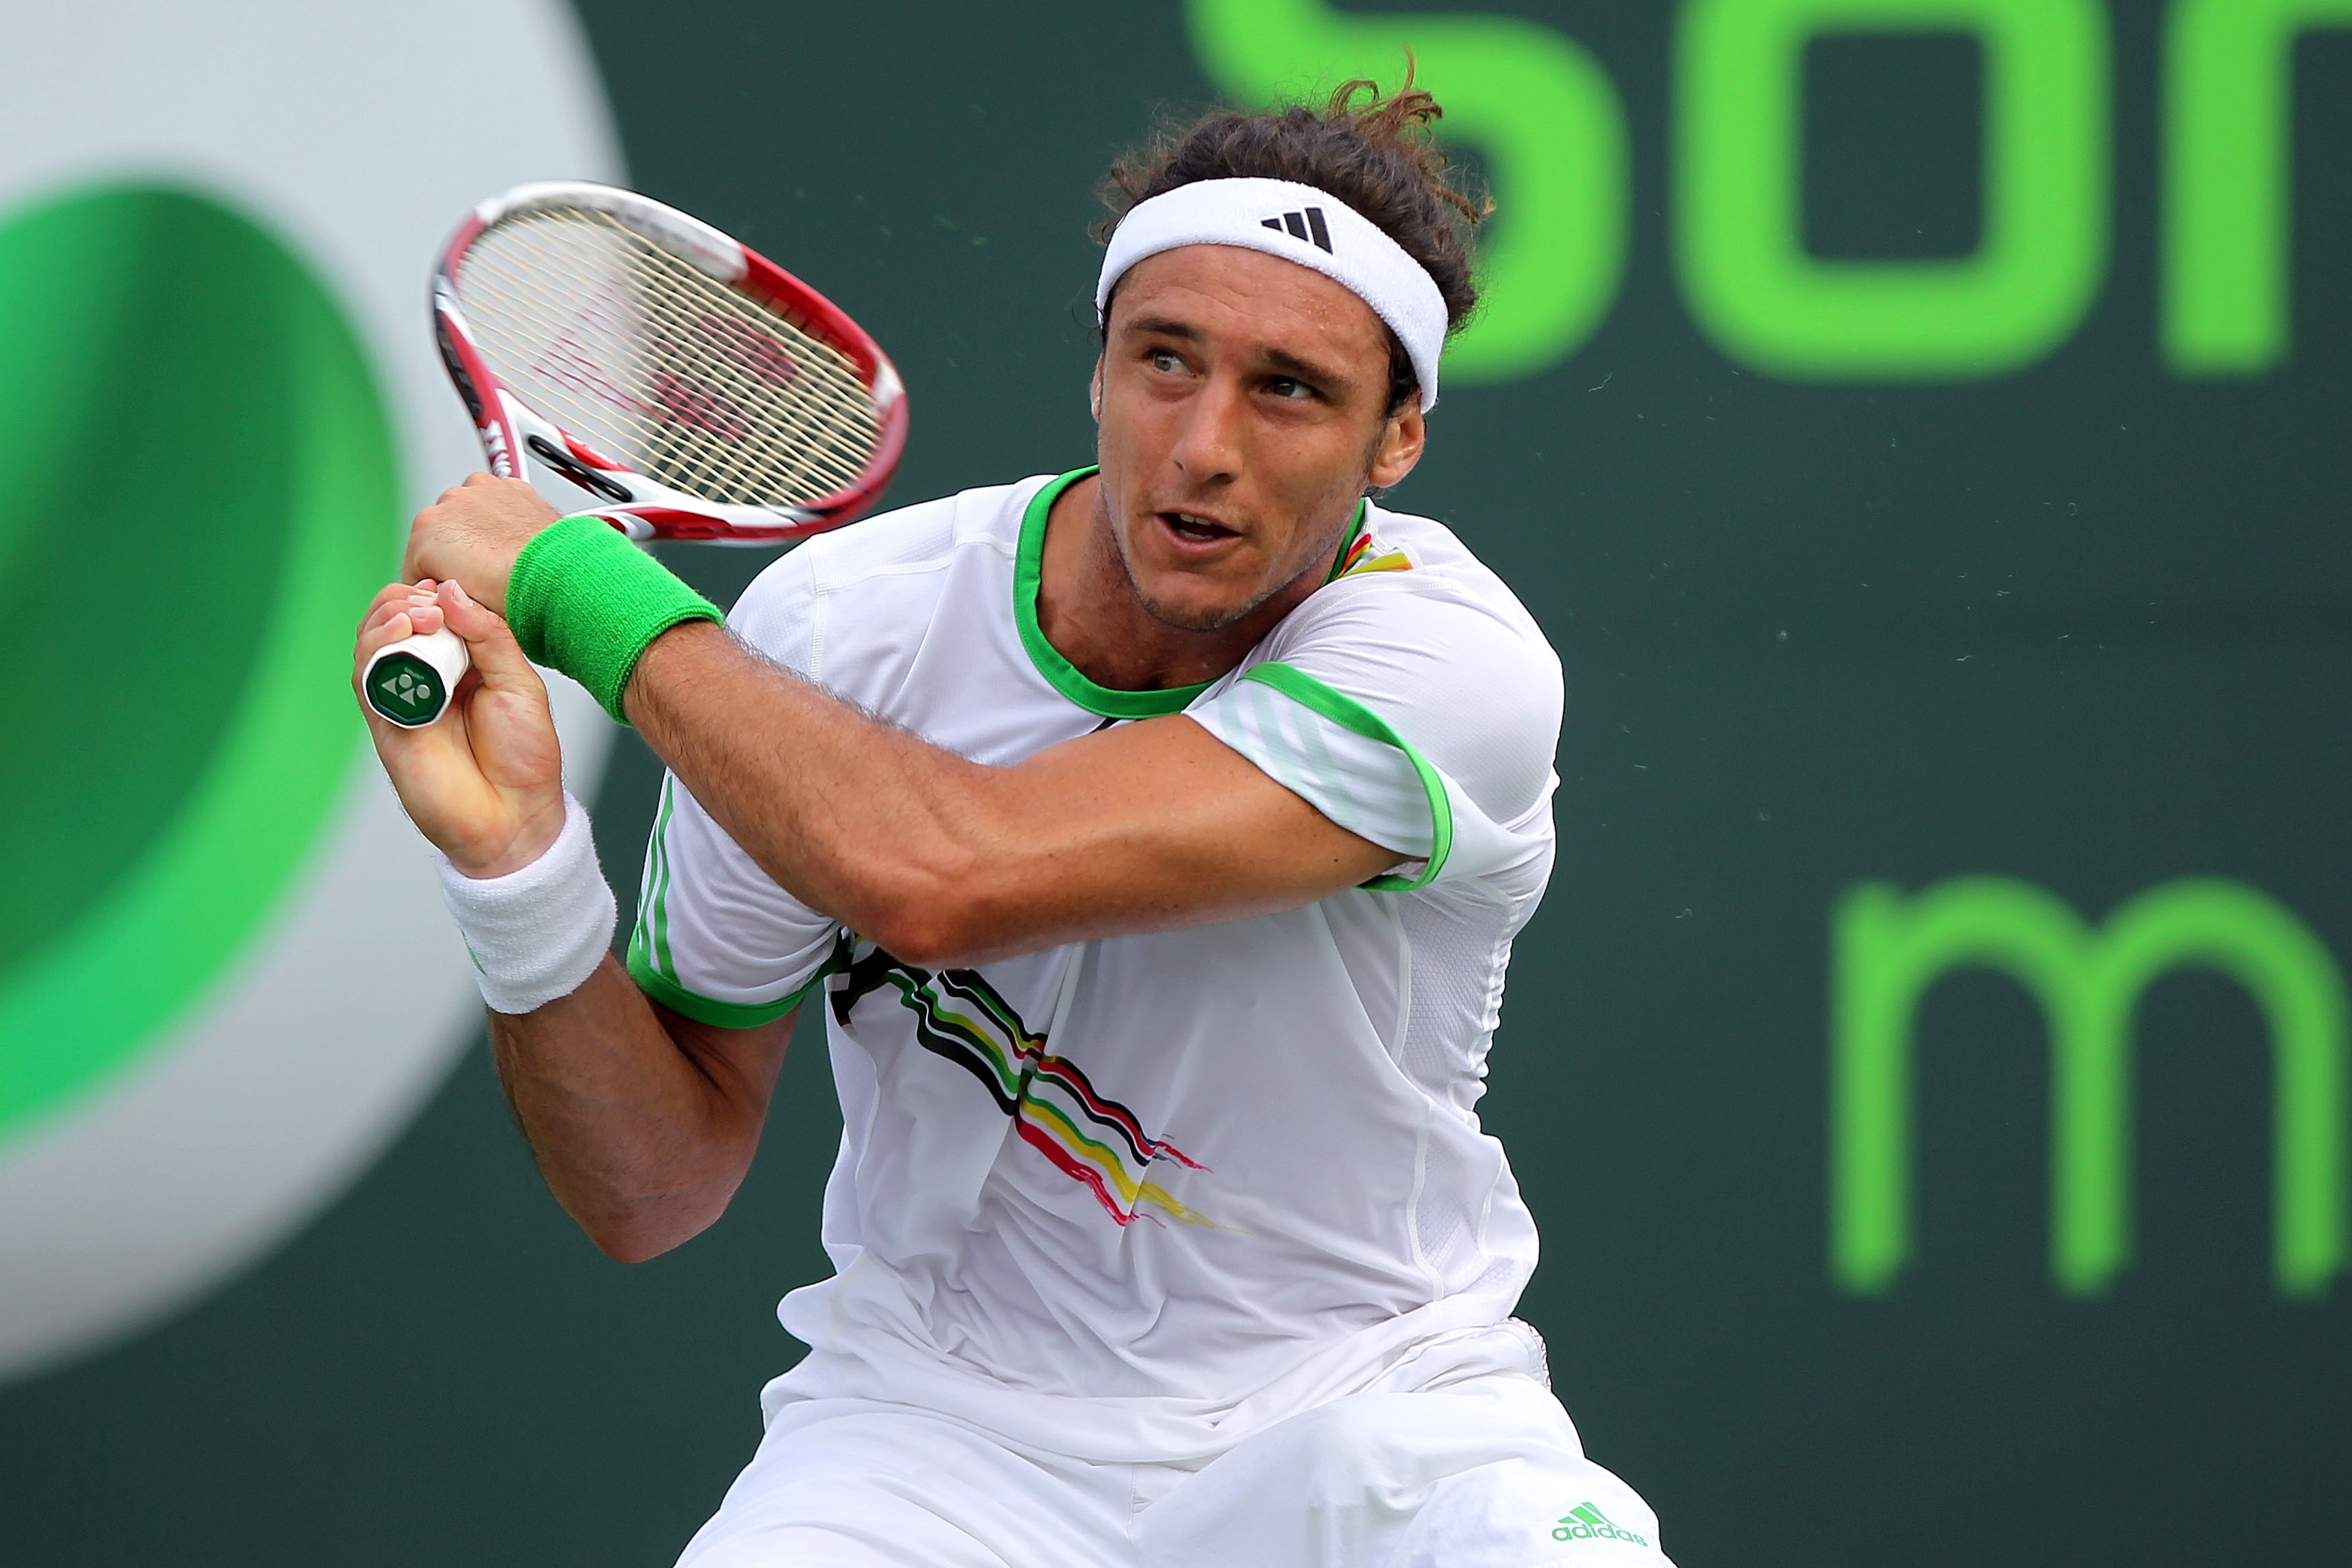 KEY BISCAYNE, FL - MARCH 28:  Juan Monaco of Argentina follows through on a return against Roger Federer of Switzerland during the Sony Ericsson Open at Crandon Park Tennis Center on March 28, 2011 in Key Biscayne, Florida.  (Photo by Mike Ehrmann/Getty I